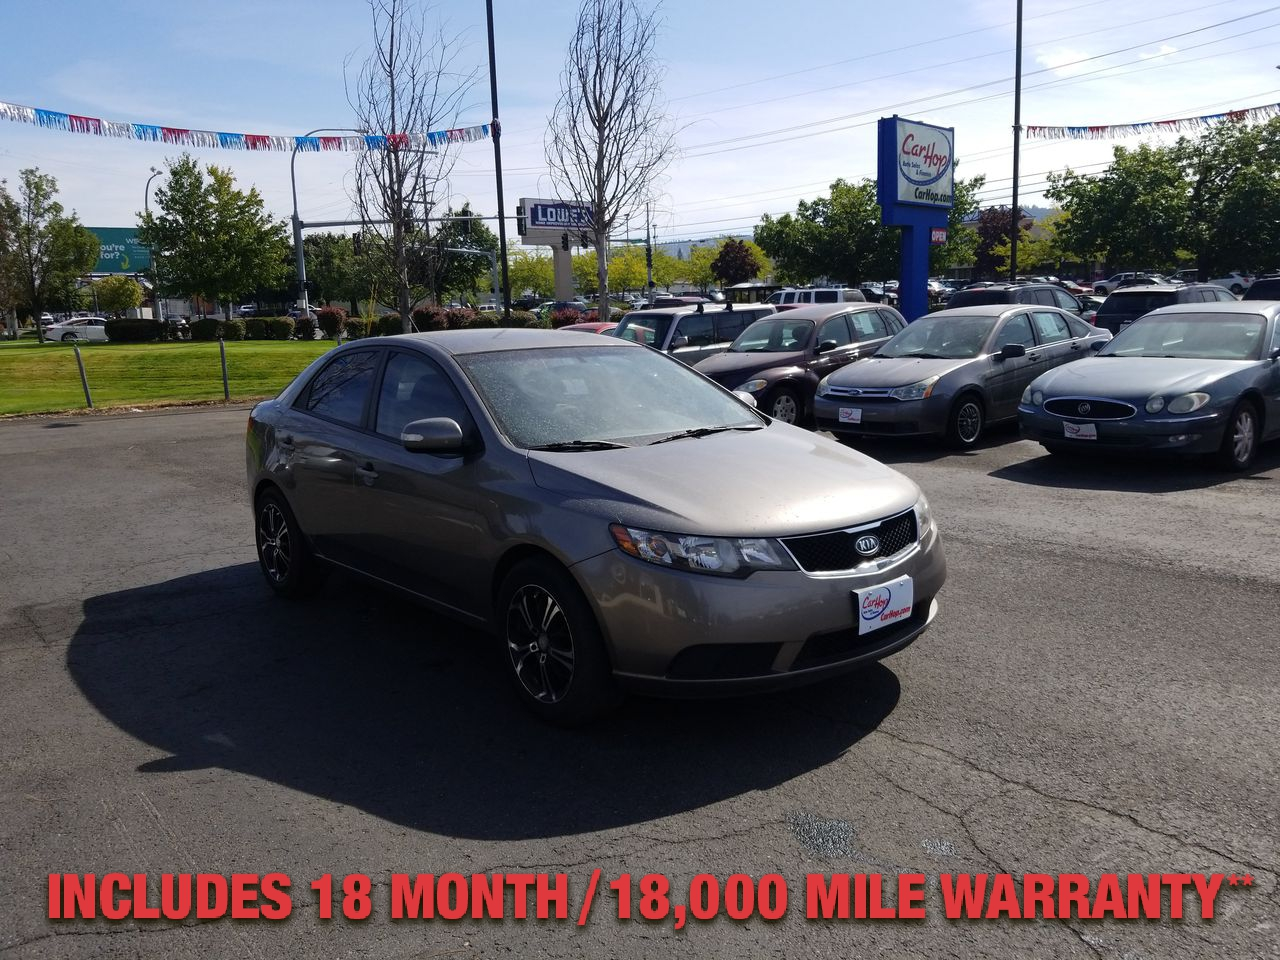 Pre-Owned 2010 KIA FORTE EX Sedan 4